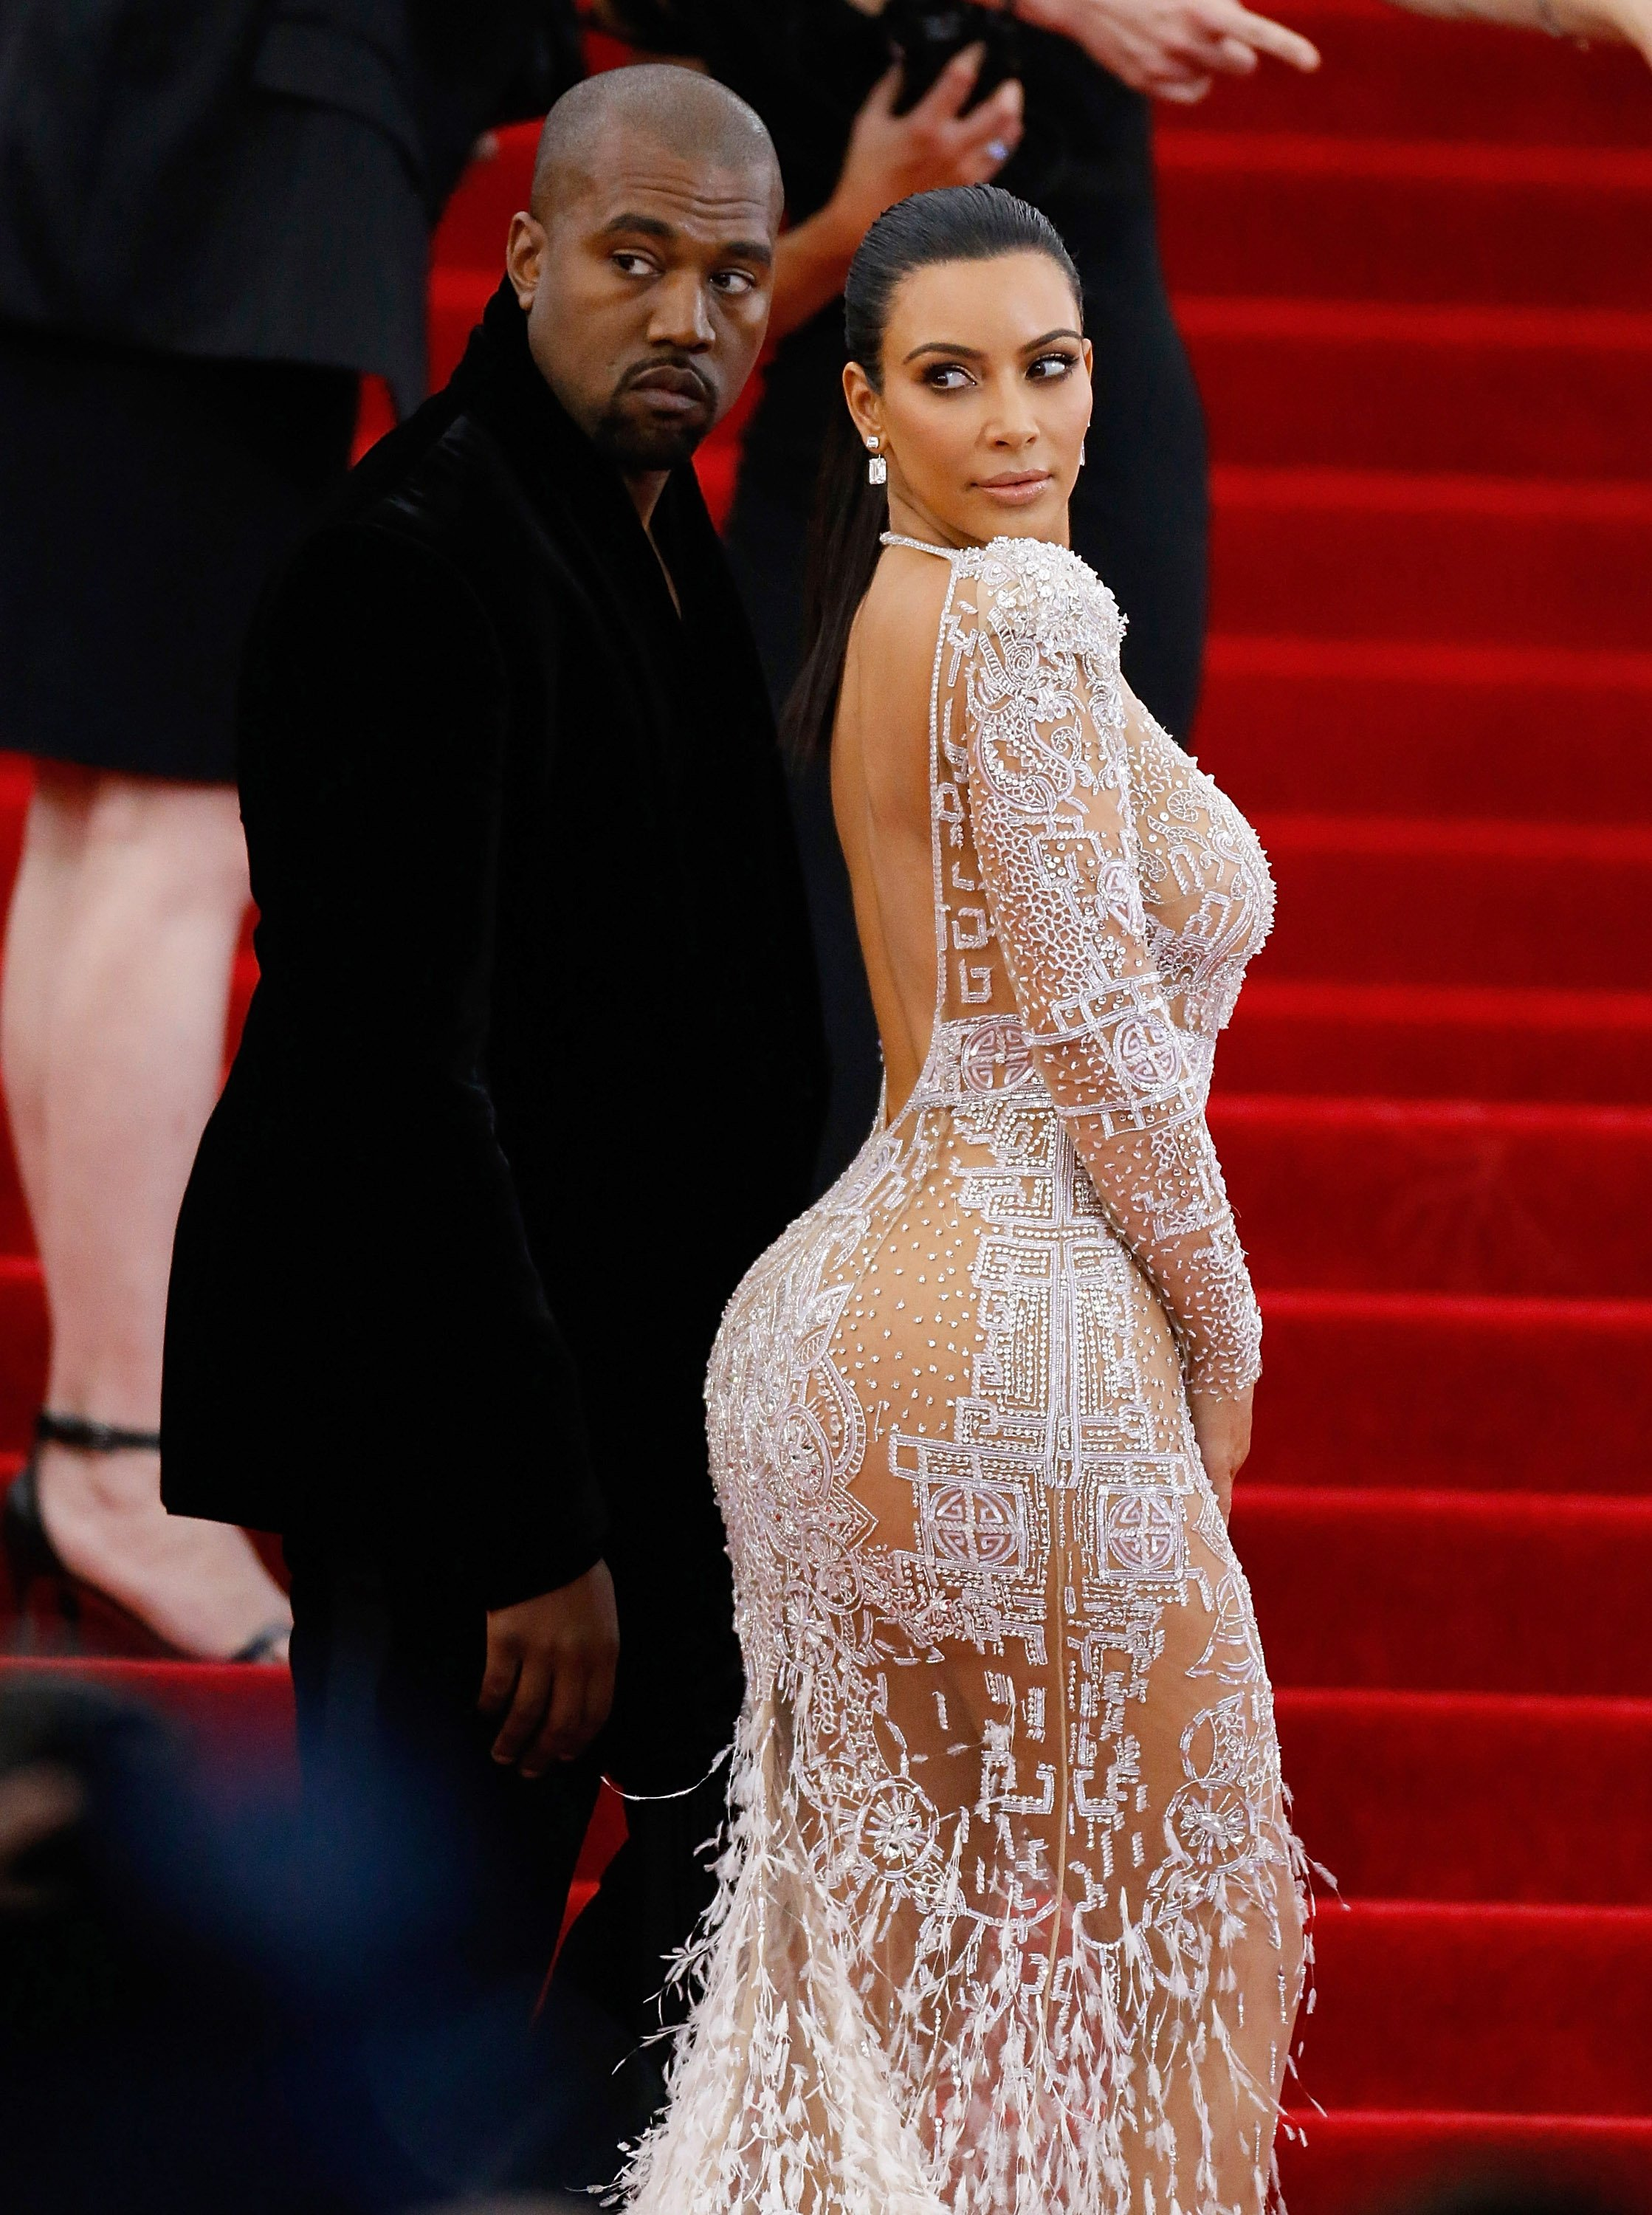 """Kanye West and Kim Kardashian attend """"China: Through The Looking Glass"""" Costume Institute Benefit Gala 